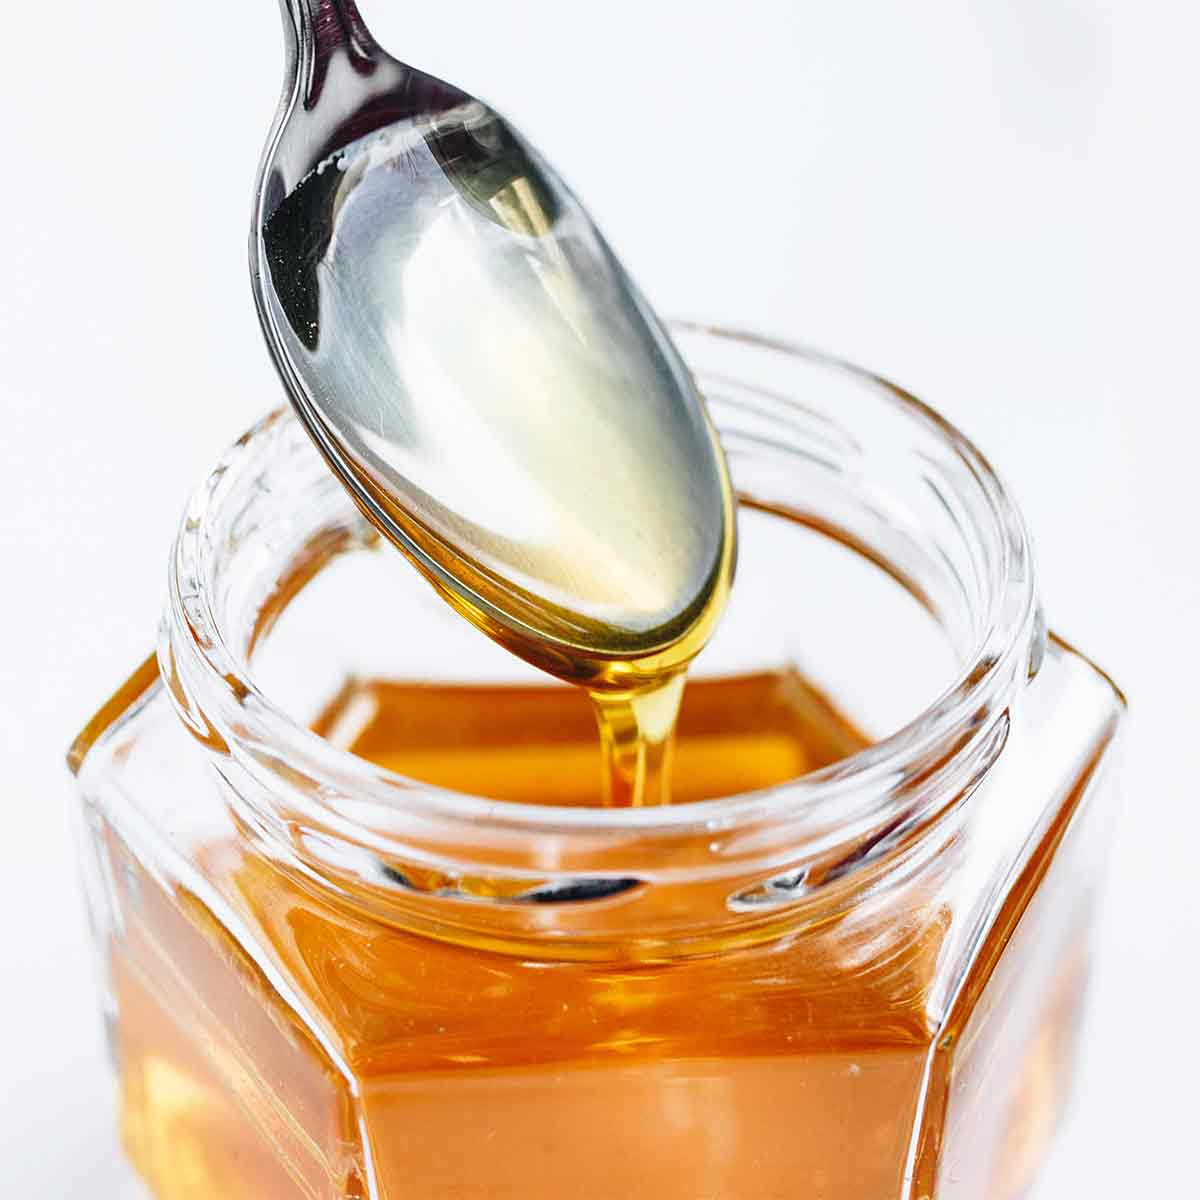 Honey high in fructose